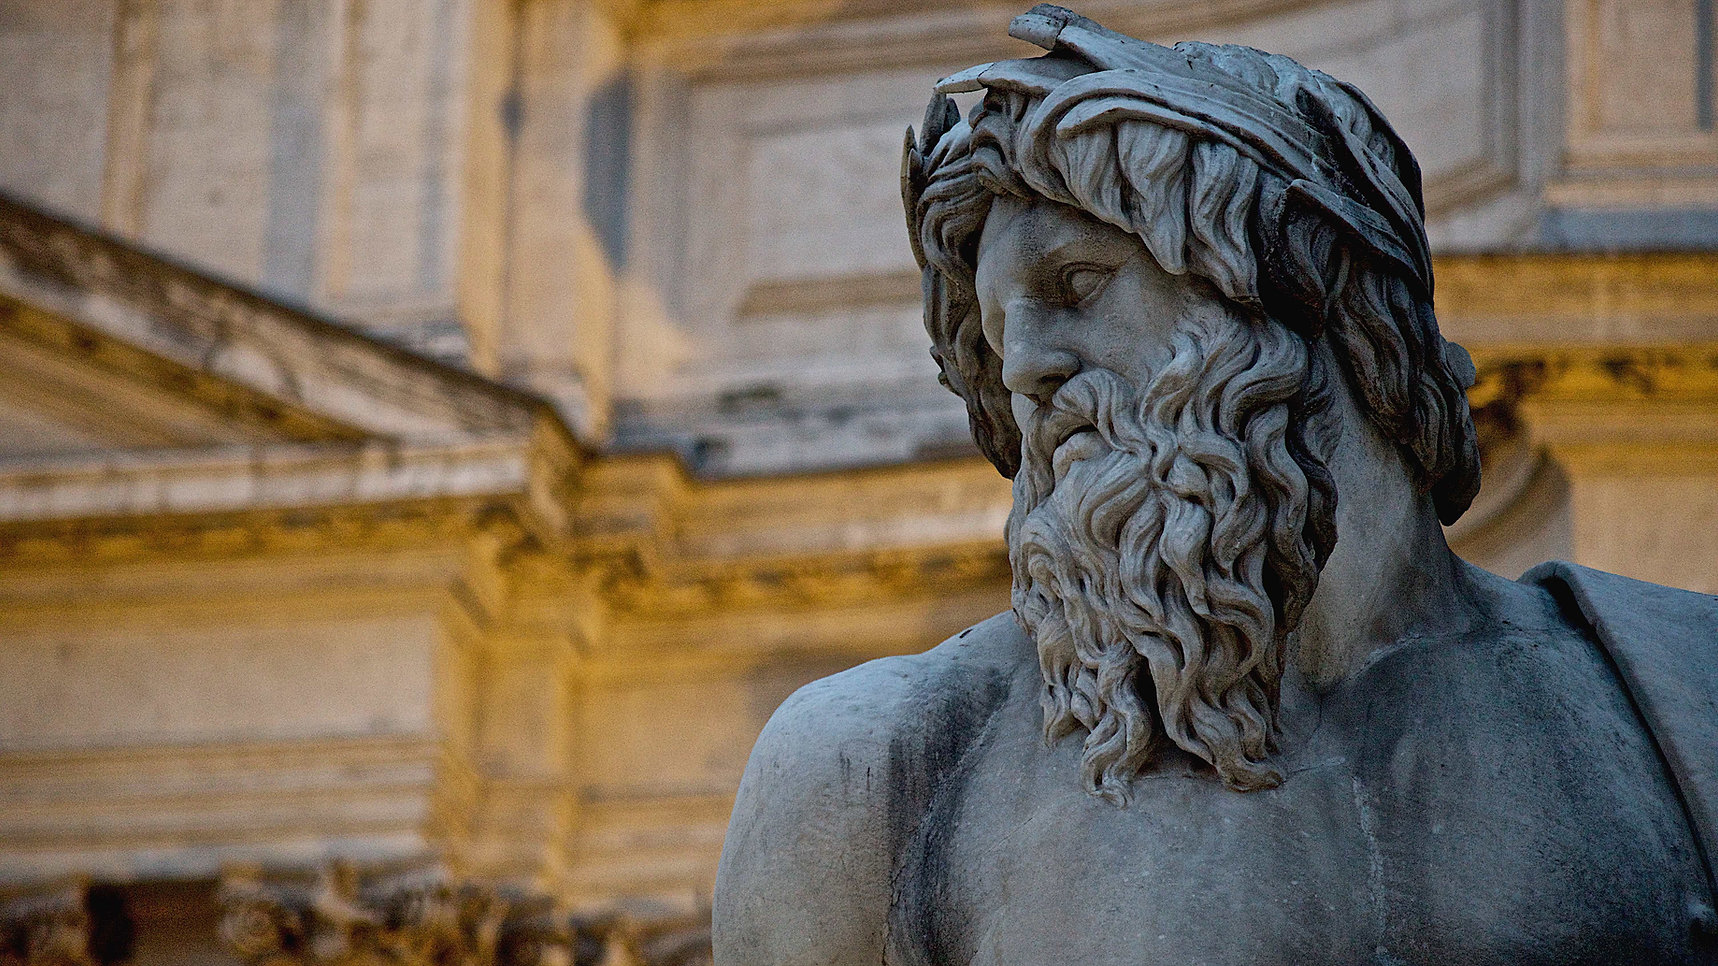 Detail of Bernini's Fountain of the Four Rivers in Piazza Navona, in Rome. Photo by Giulio D'Ercole, Rome Photo Fun Tours